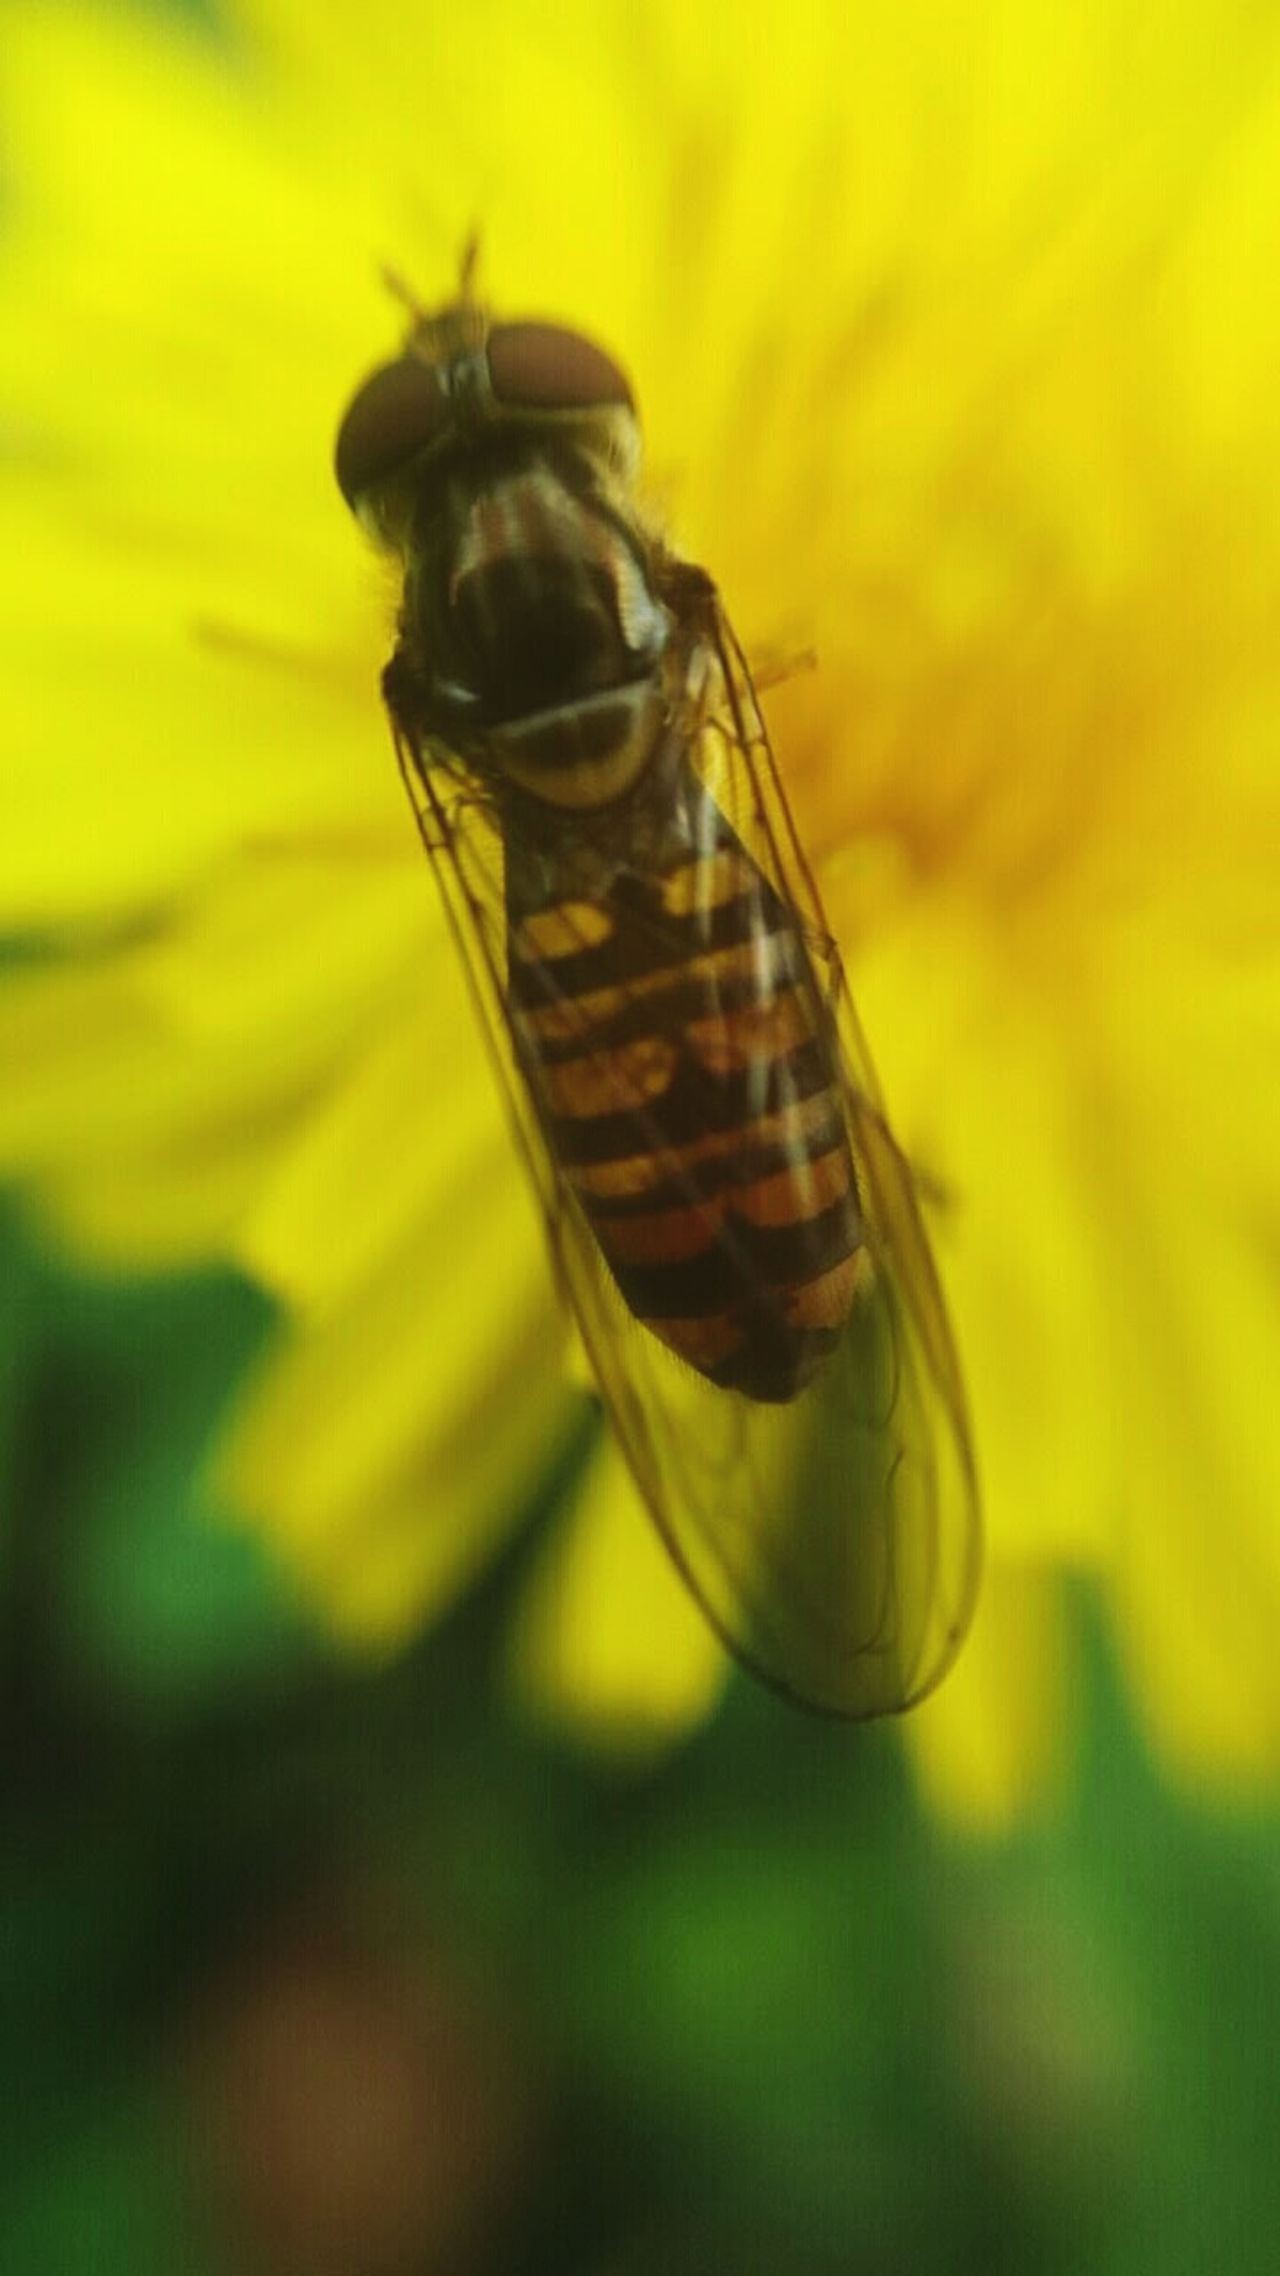 Insect Bee Yellow Flower Nature Day Natural Beauty Talking Photo Zoom Beautiful Nature Beauty In Nature Flower